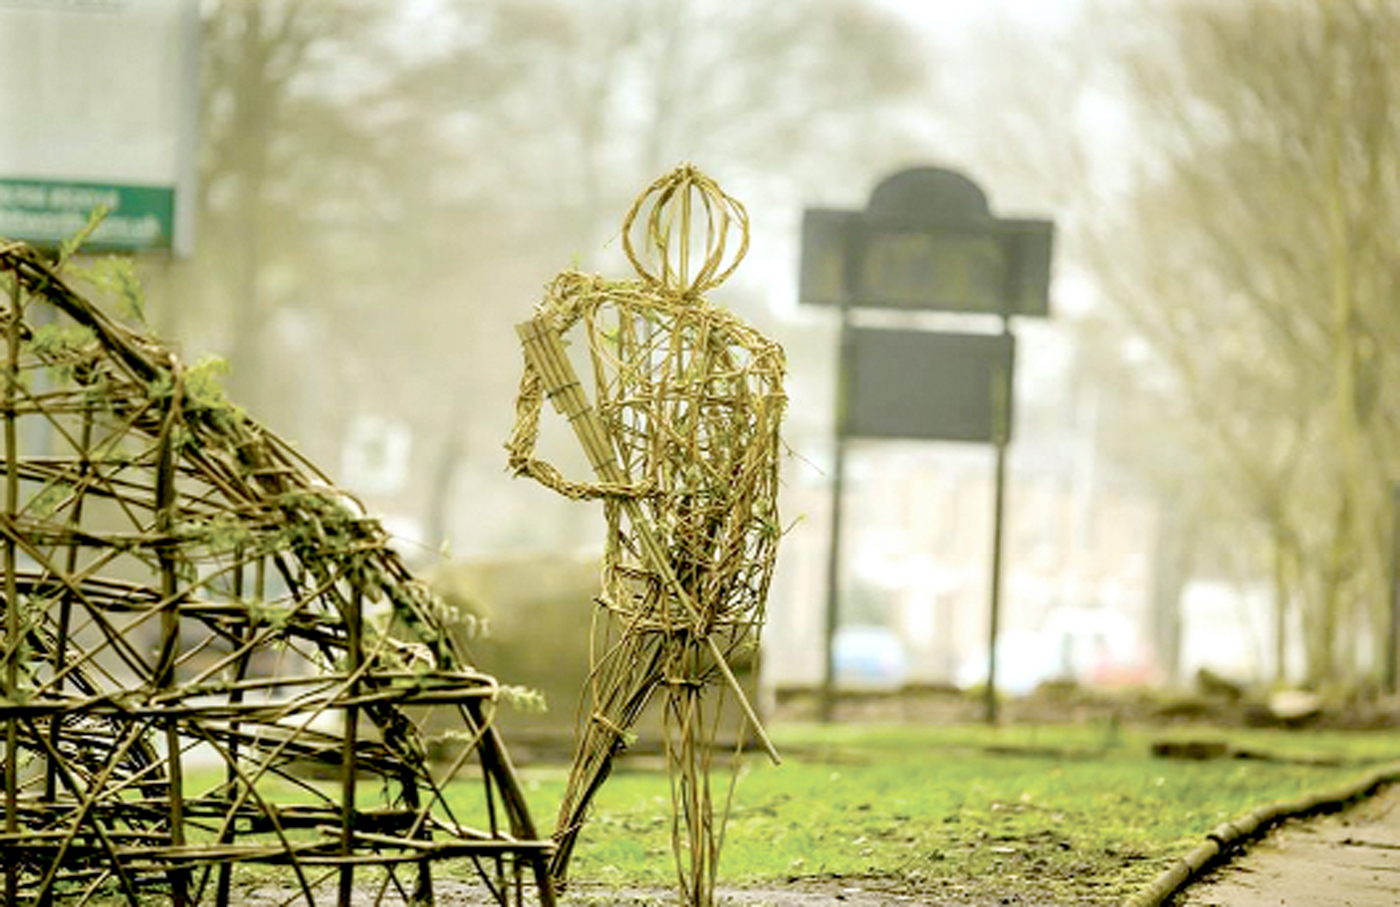 First World War wicker man theft from Whitworth sparks anger